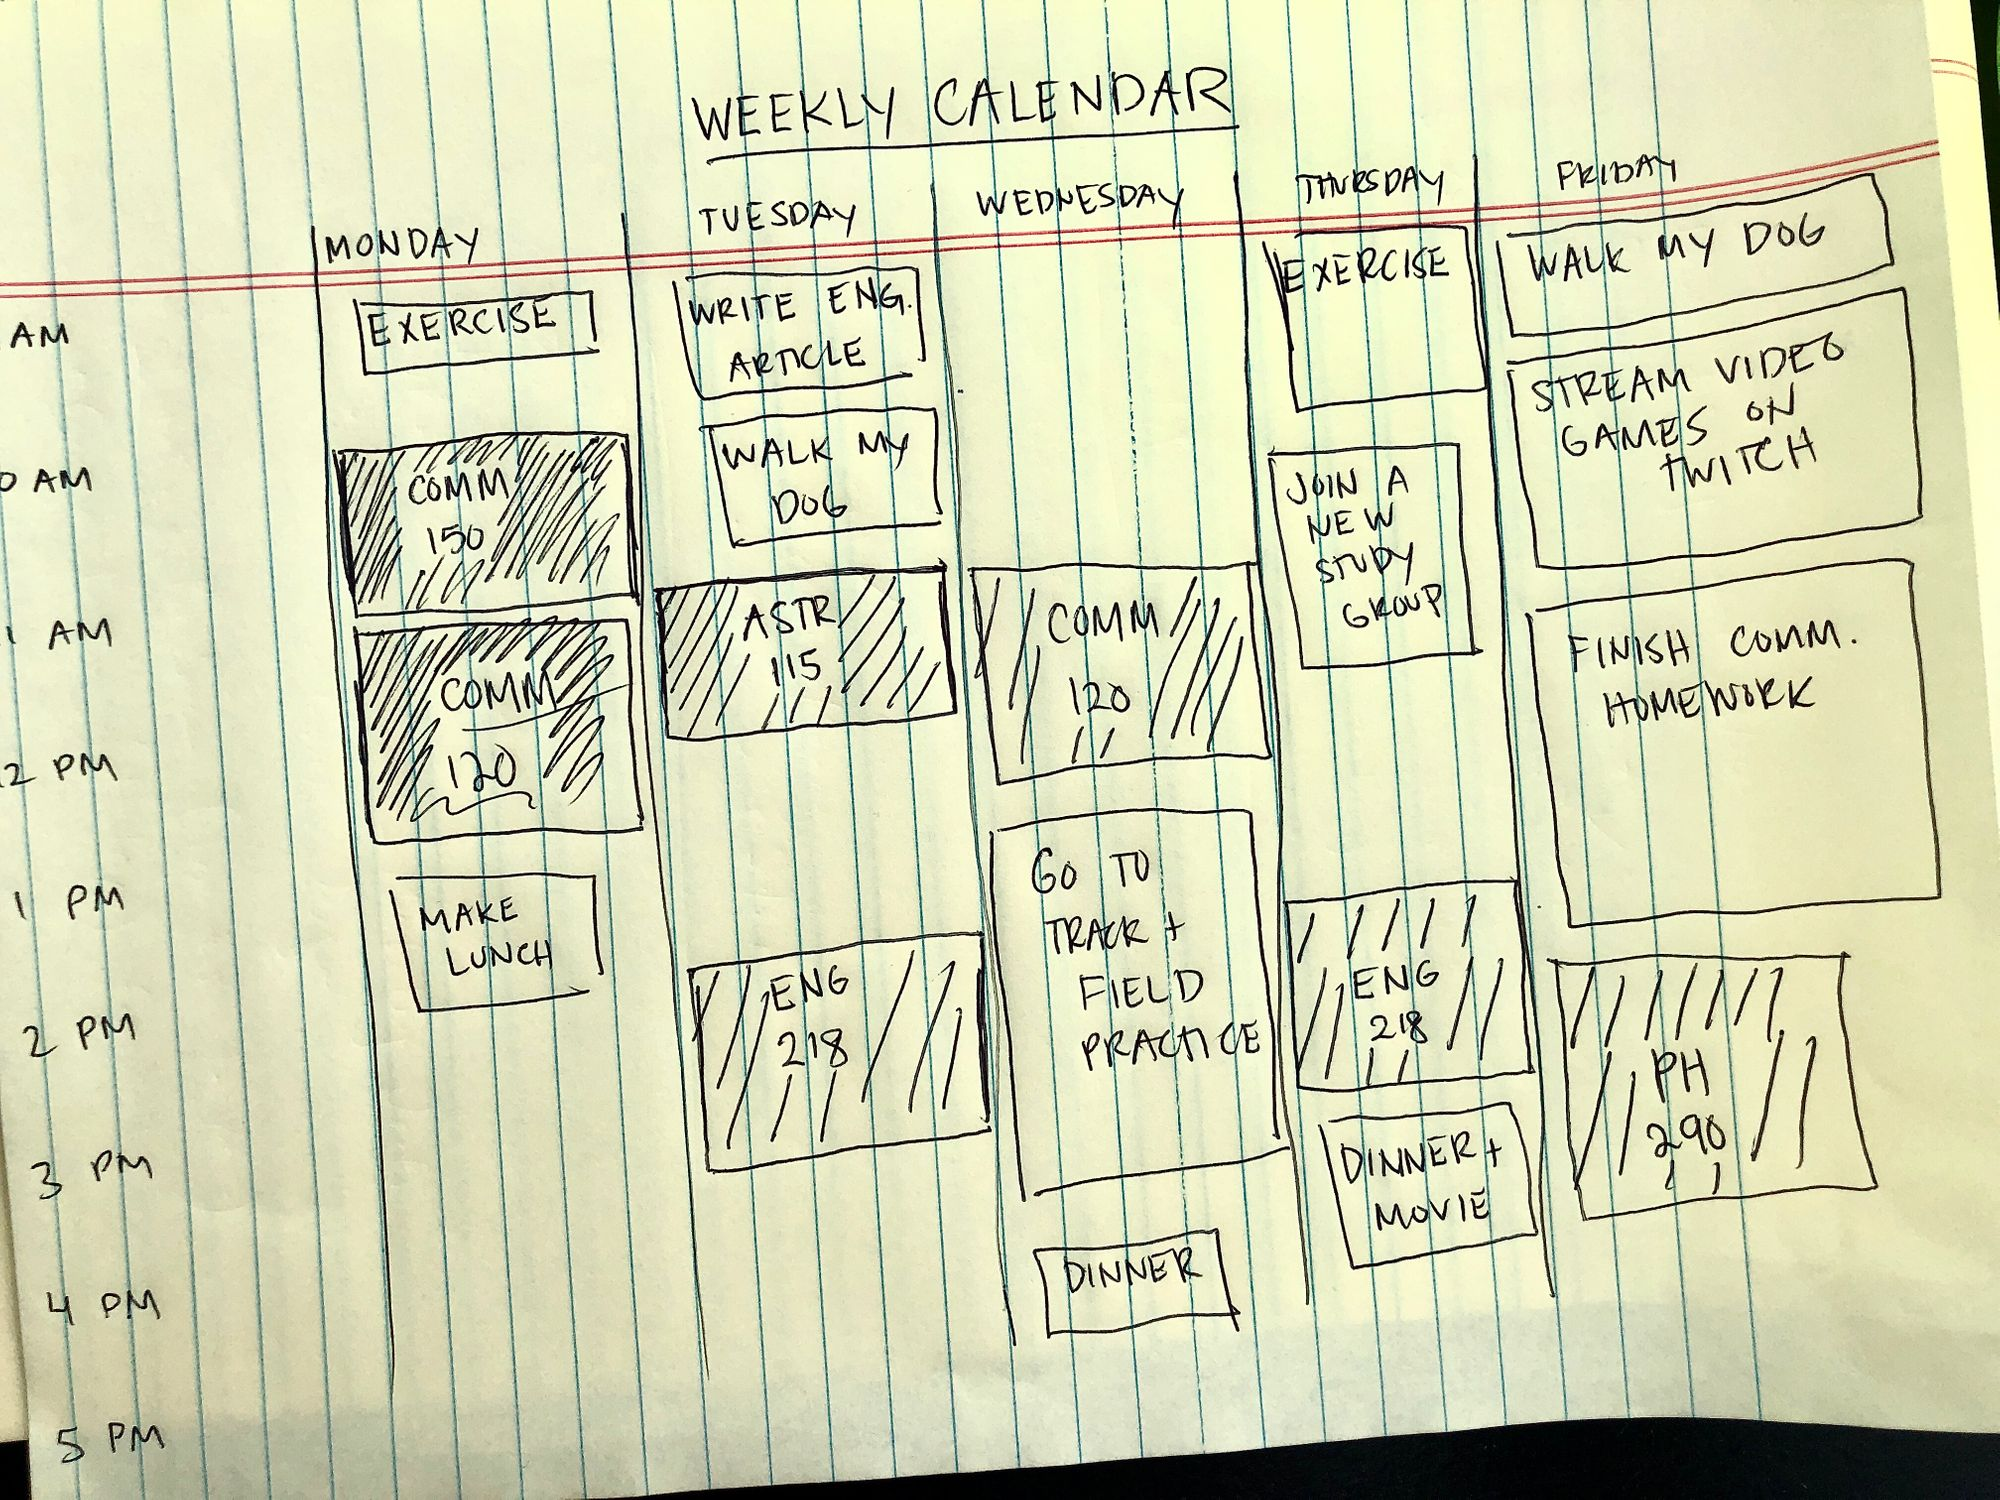 Lined paper showing a sketch of a weekly calendar with columns and squares